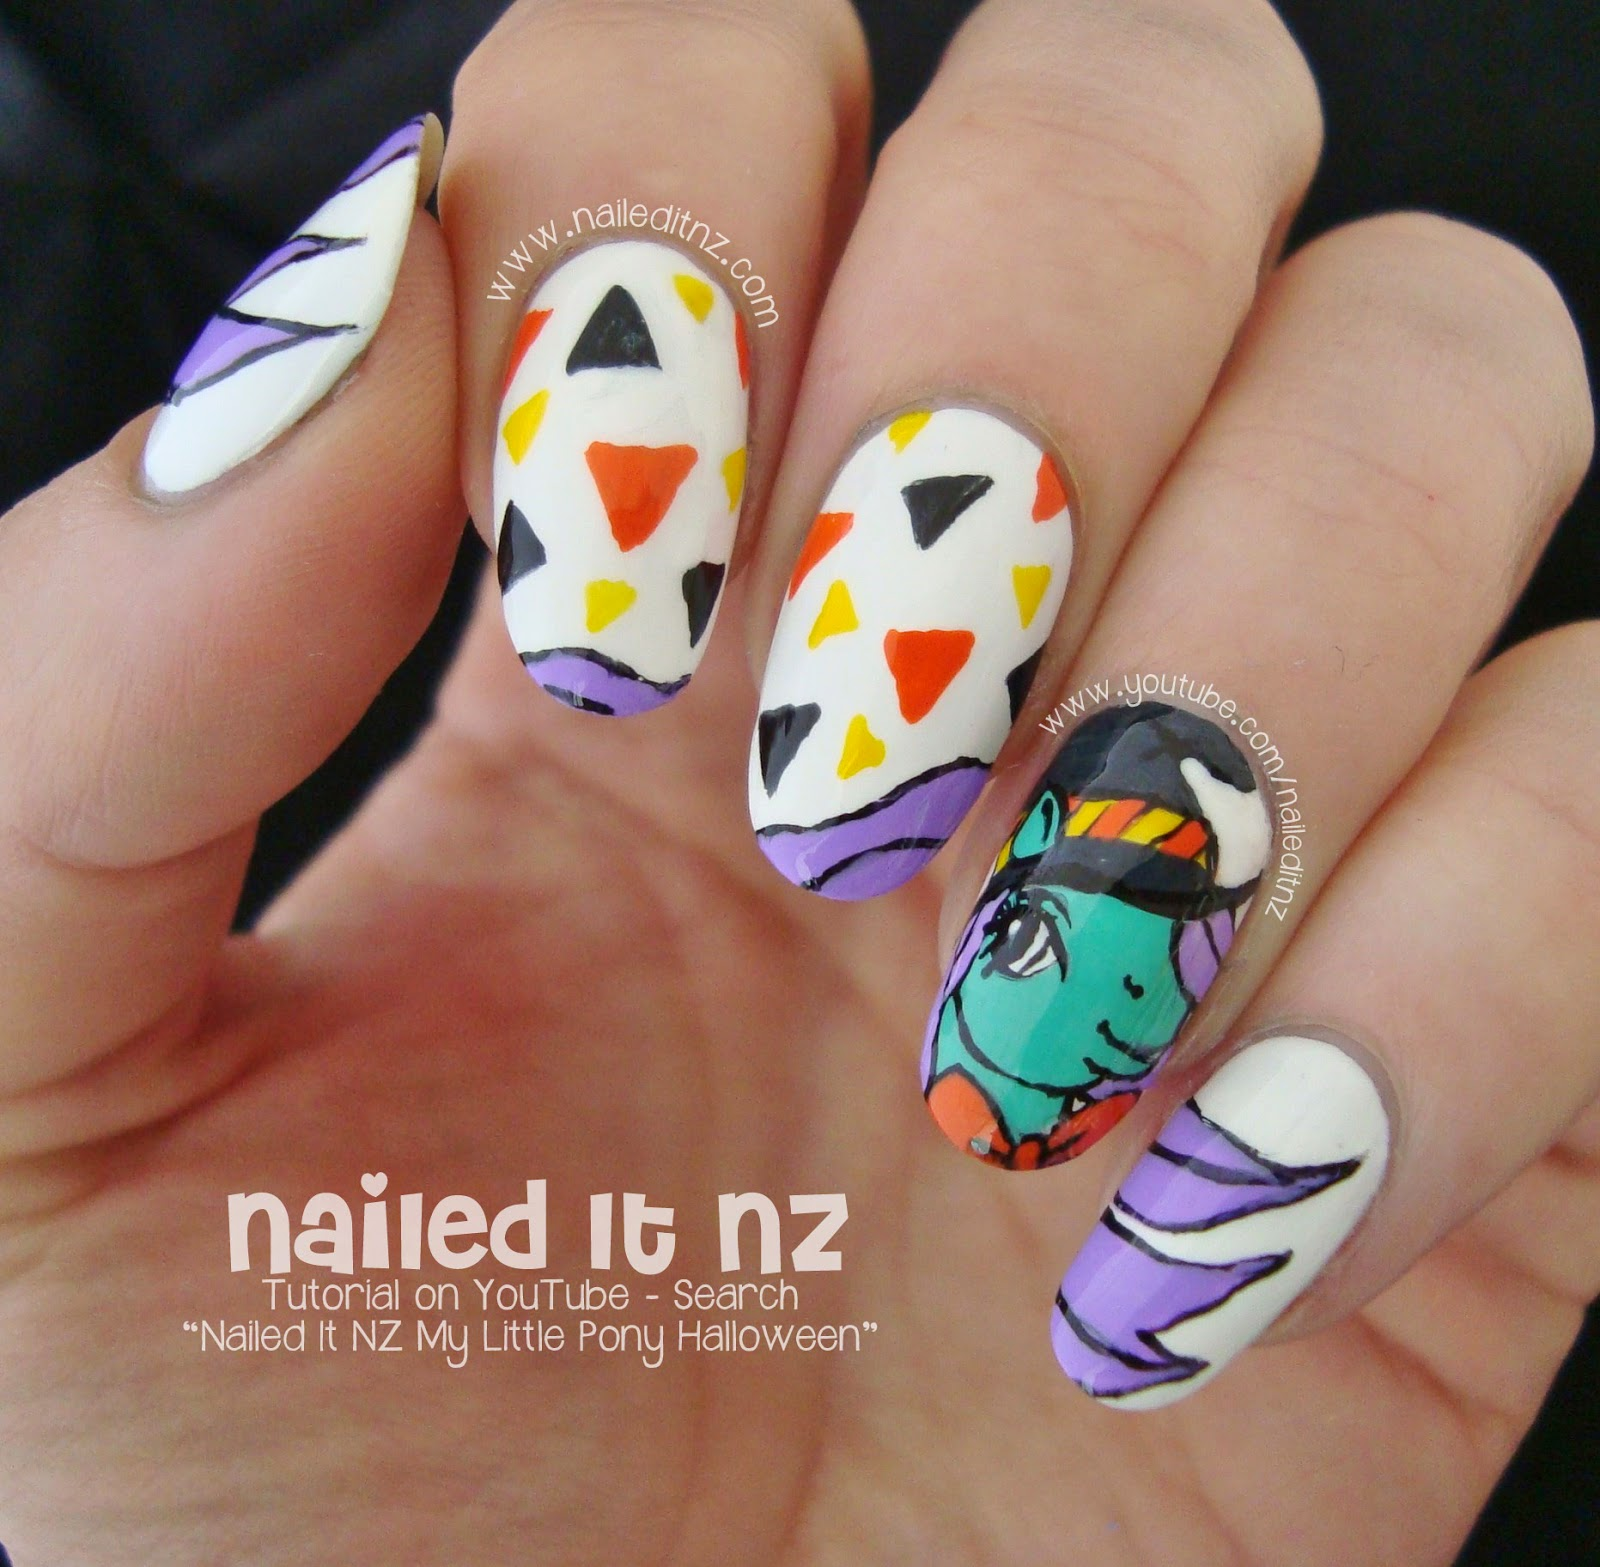 My little pony halloween nail art tutorial nailed it nz prinsesfo Gallery